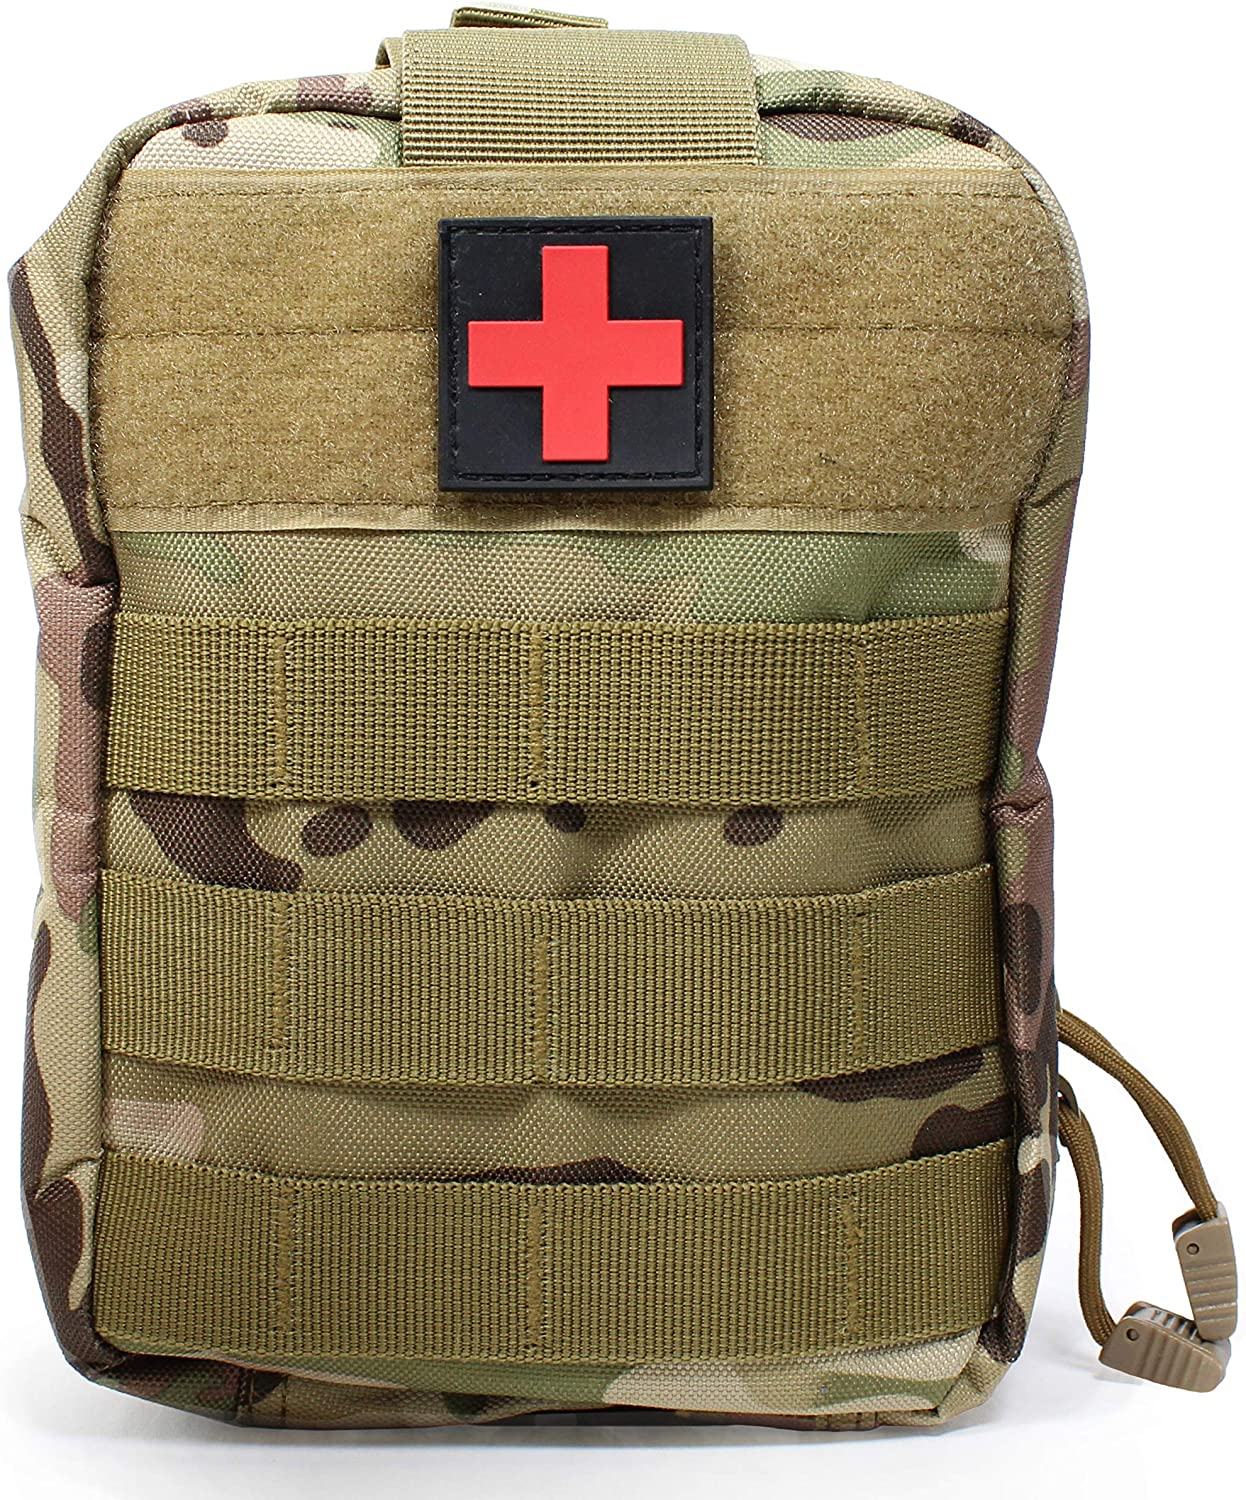 Outdoor Tactics Survival Molle Pouch First Aid Kit Emergency Medical Utility Bag